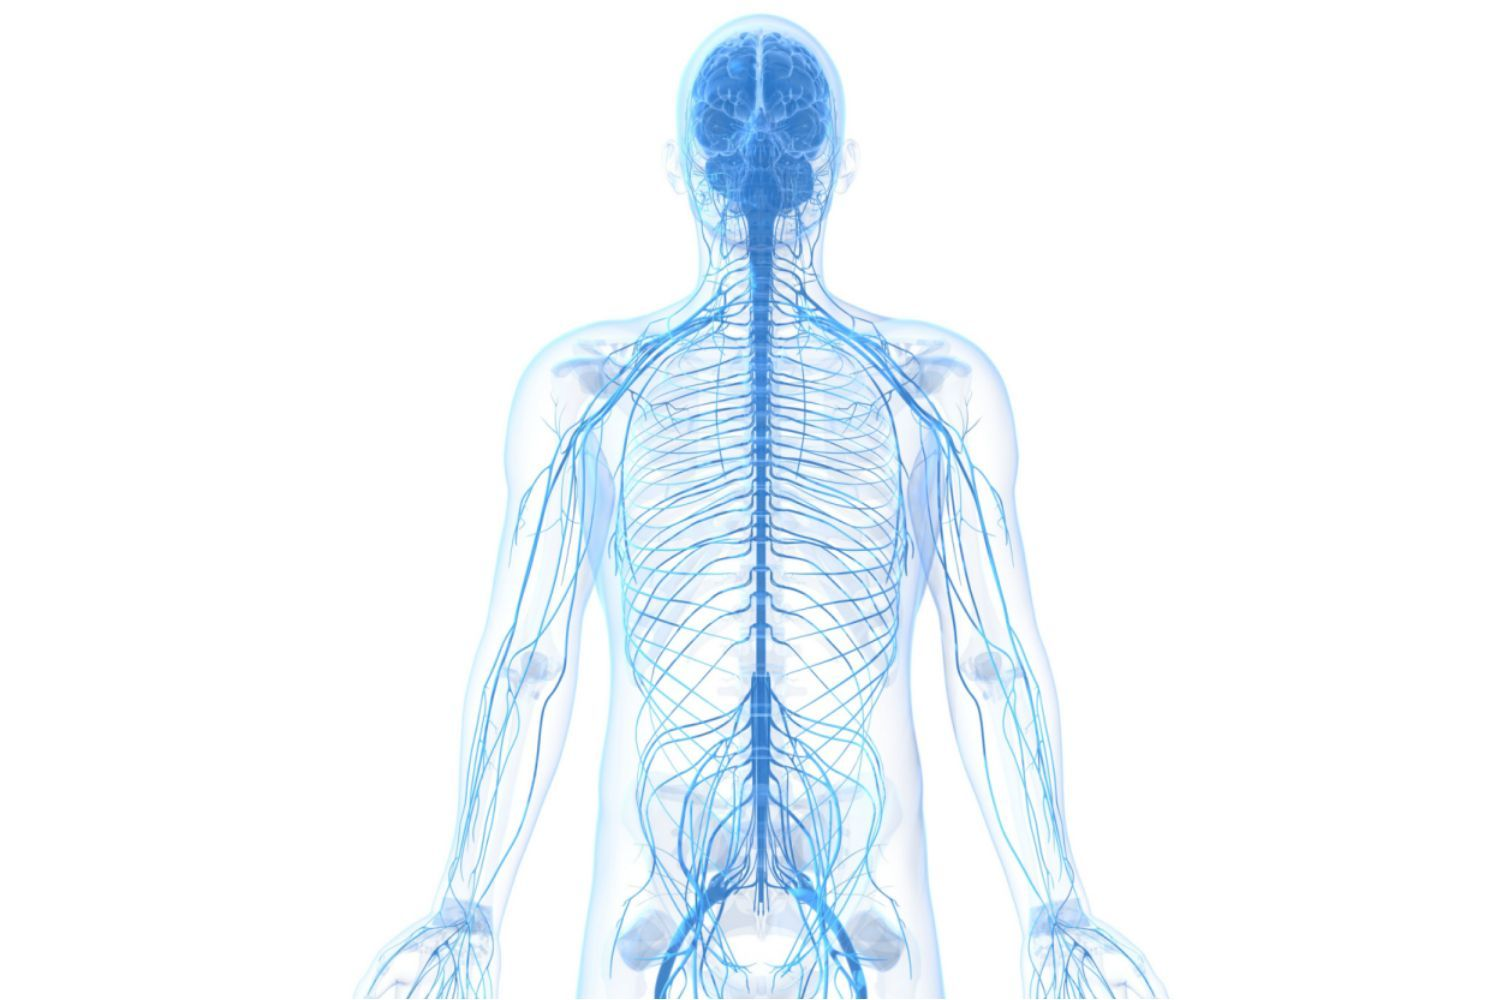 The Nervous System Consists Of The Brain Spinal Cord And A Complex